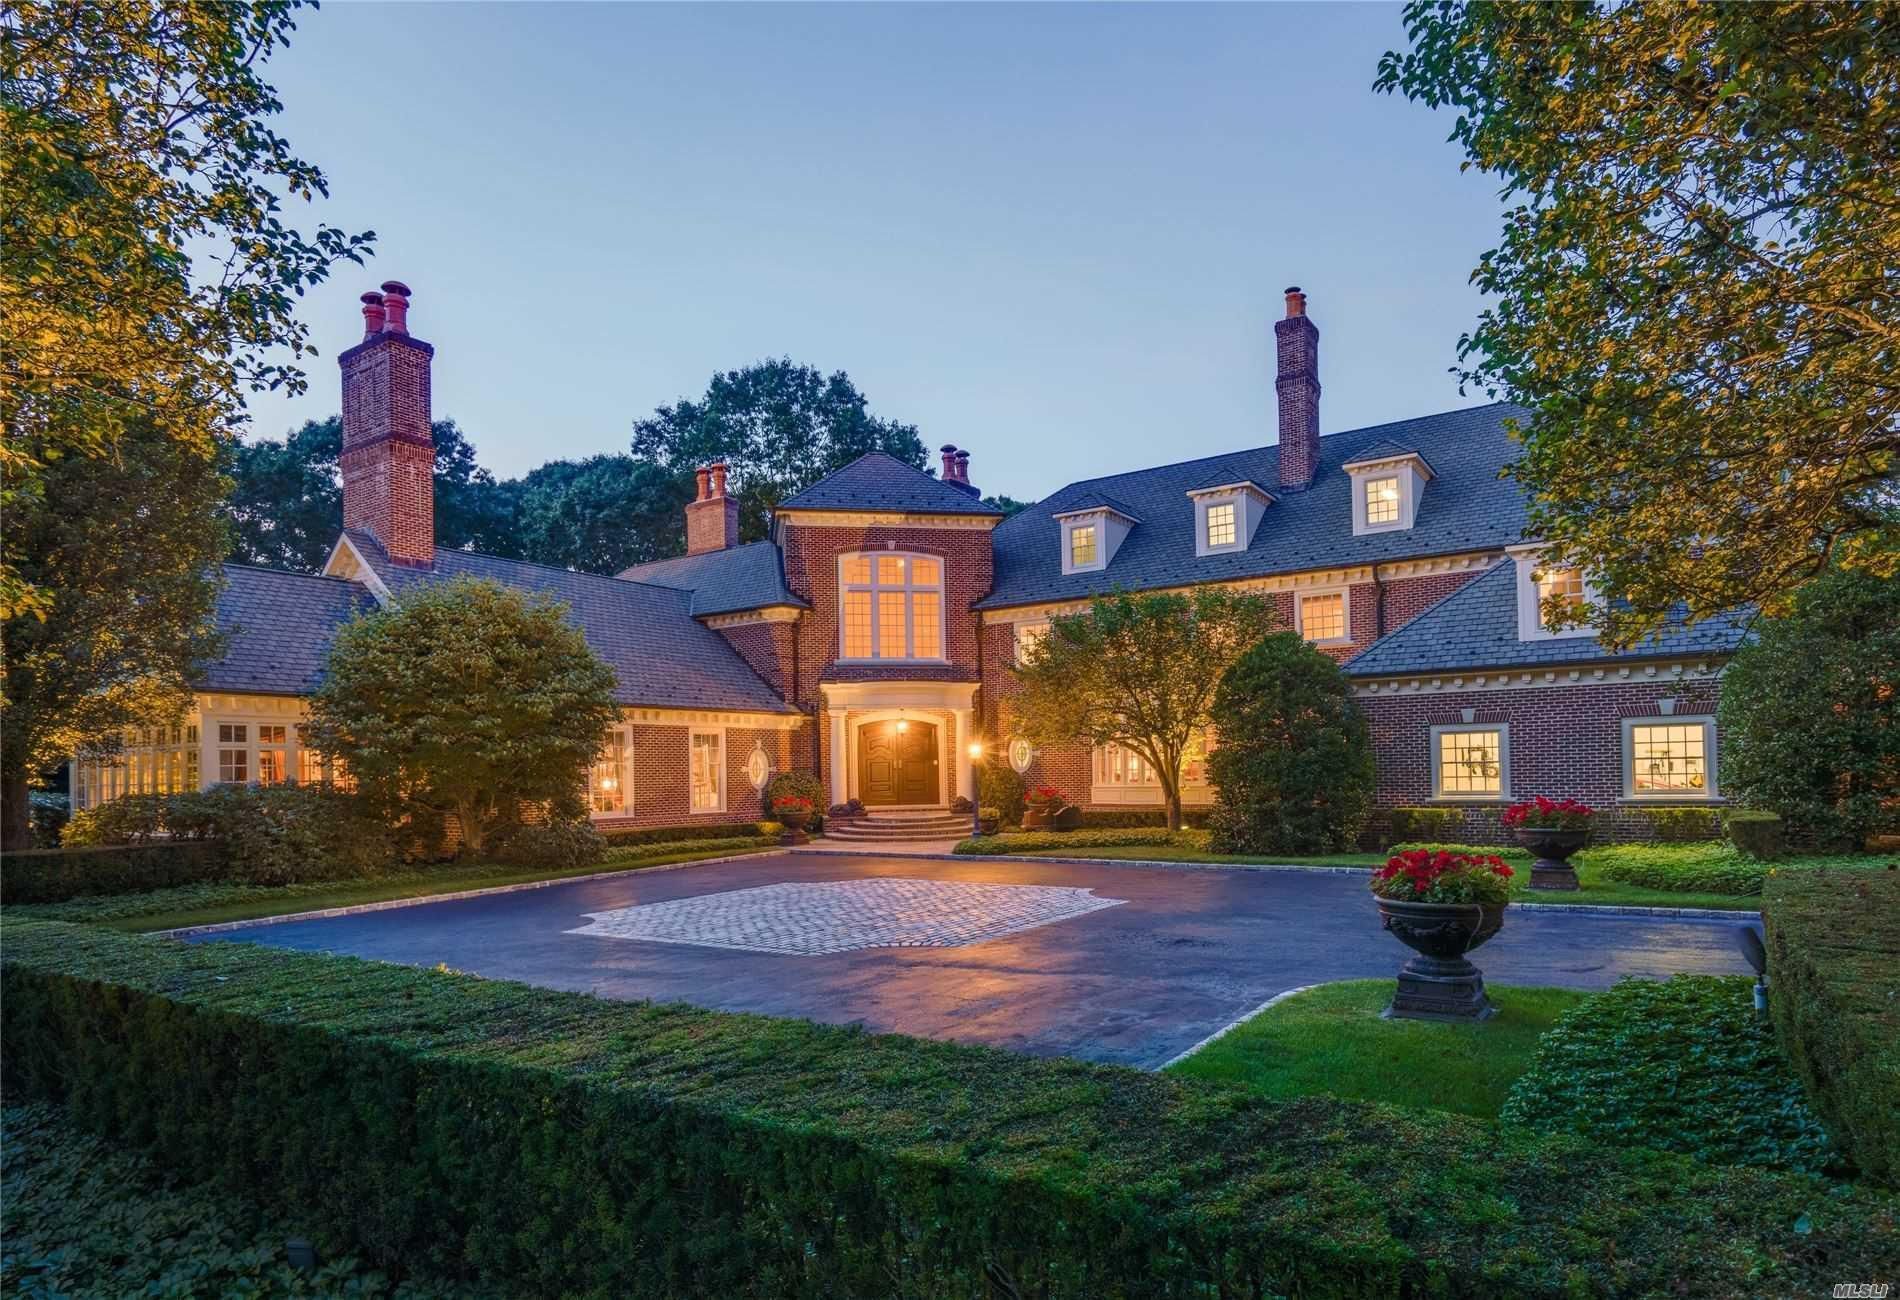 LuxuryLongIsland.com - Long Island Real Estate and Homes for Sale with  Maria Babaev